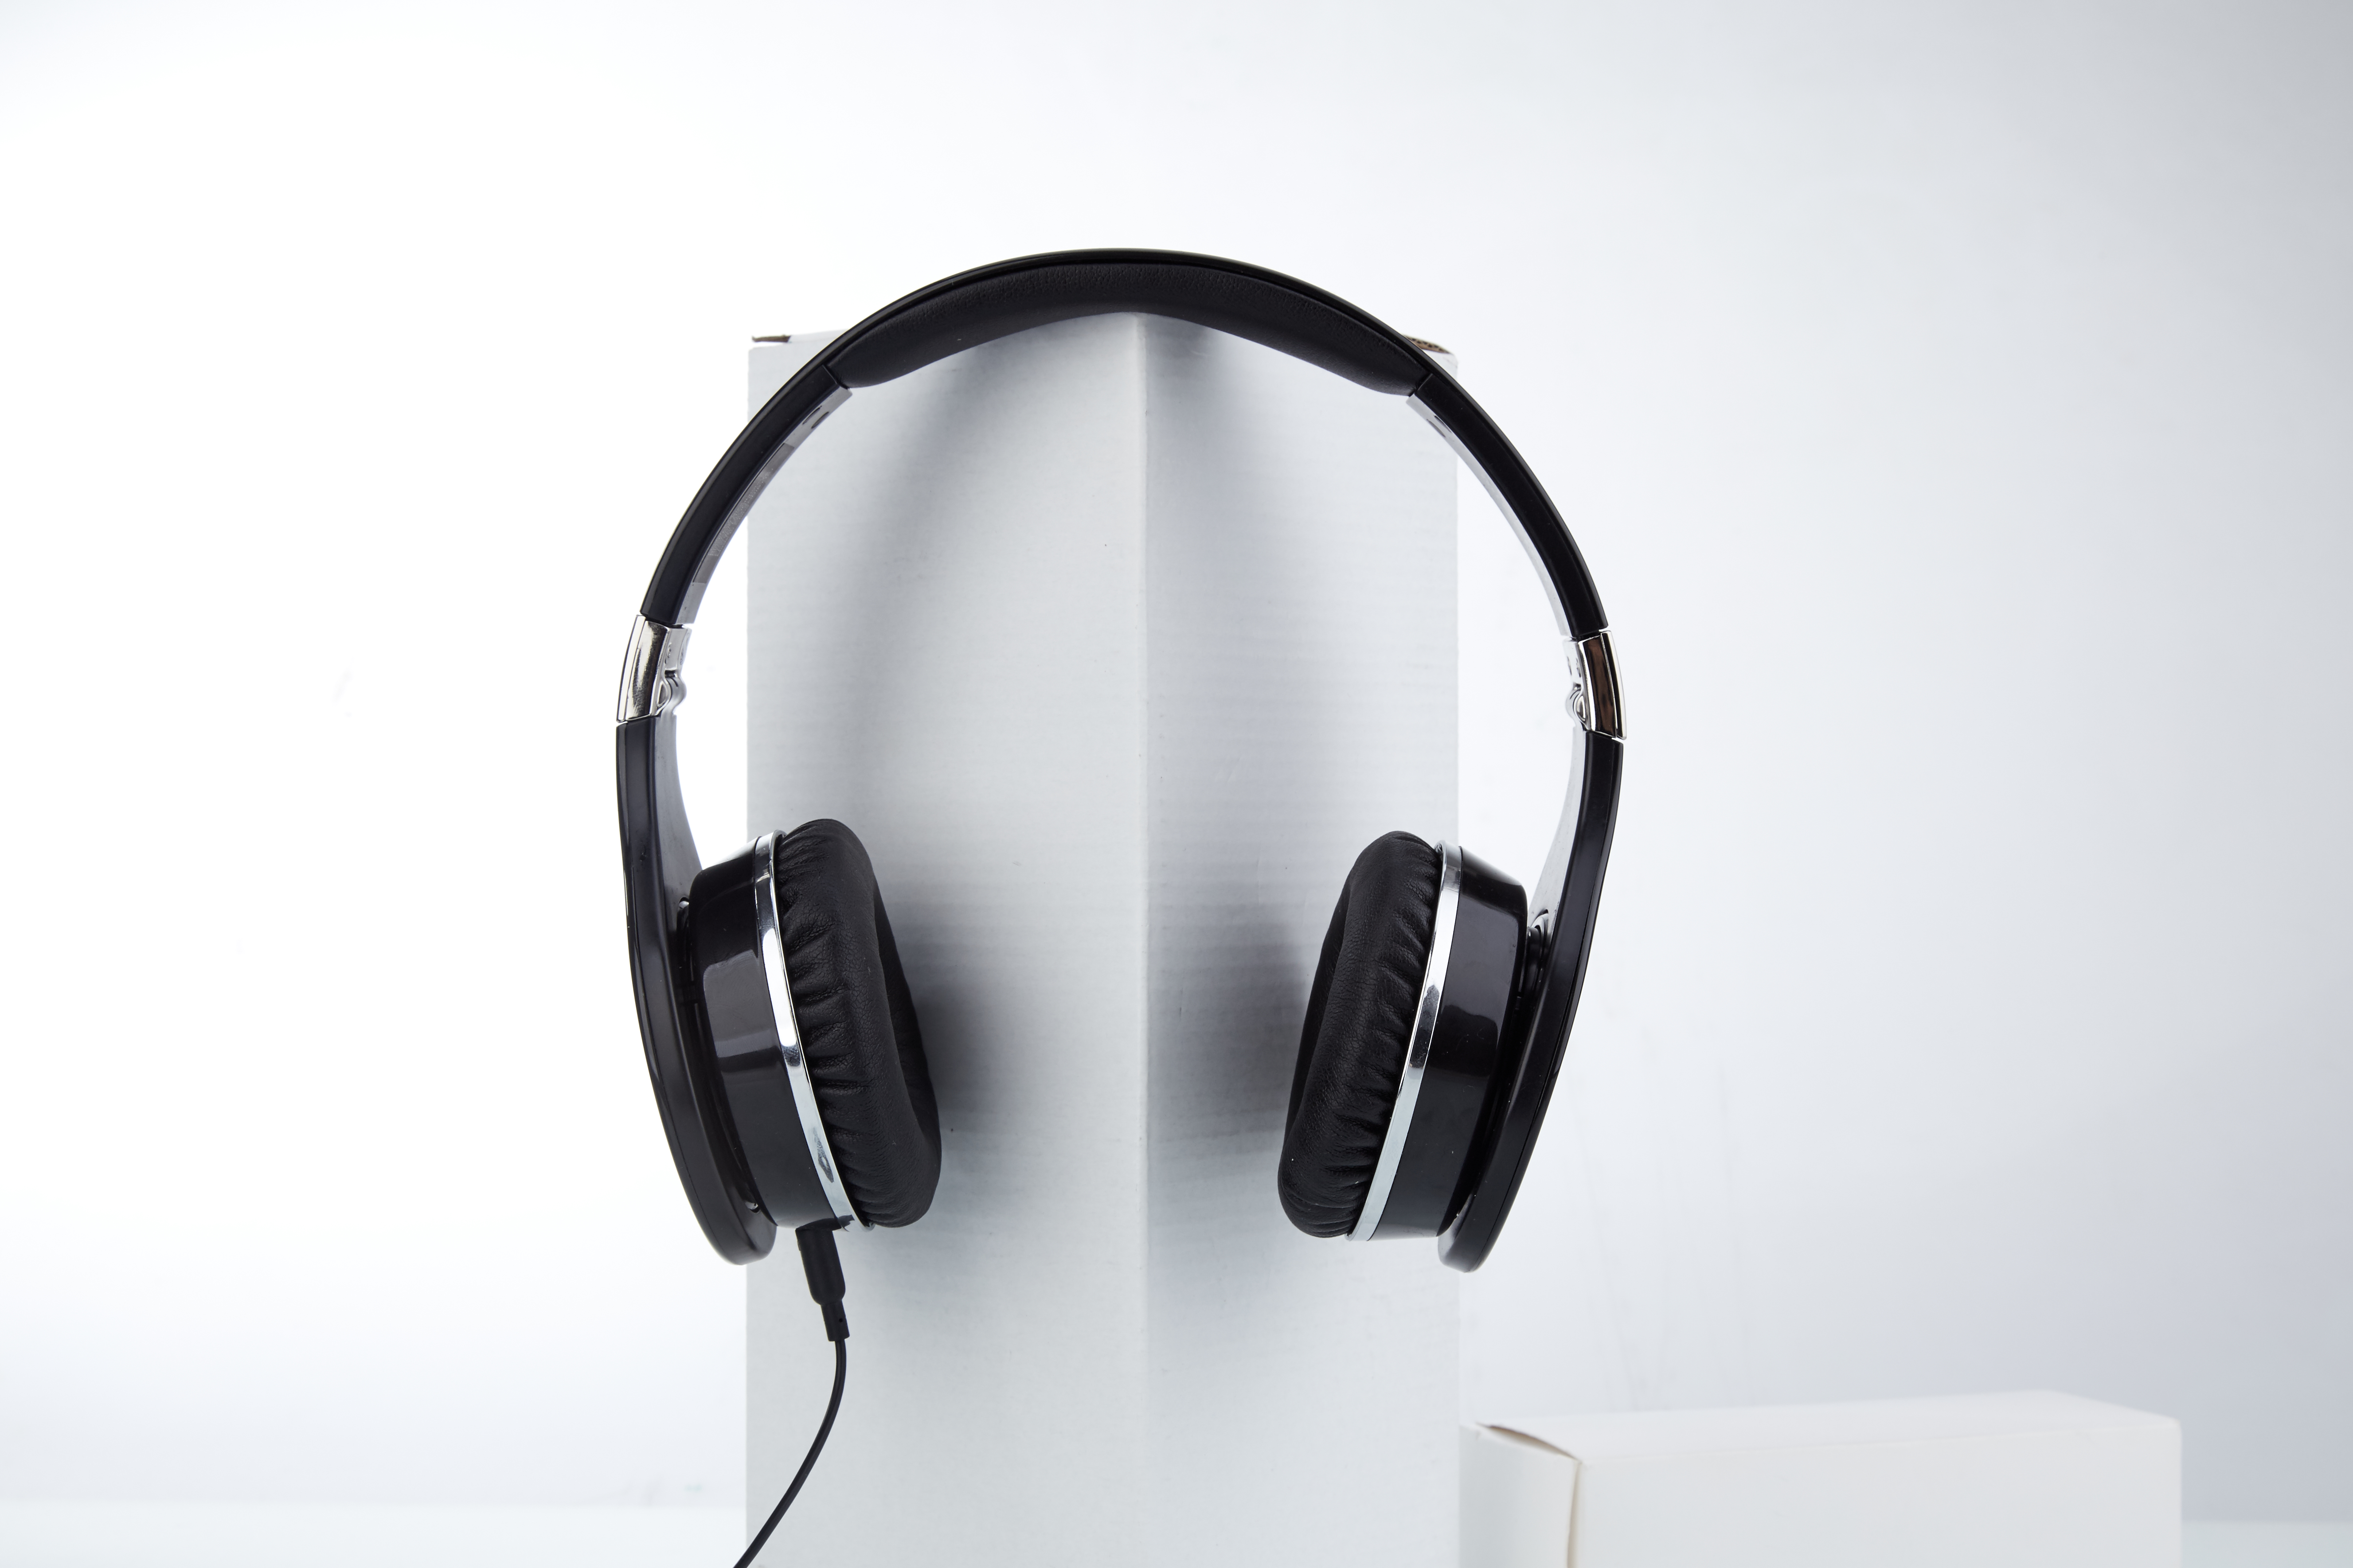 Mixcder 872 HD headphones hanging, white background